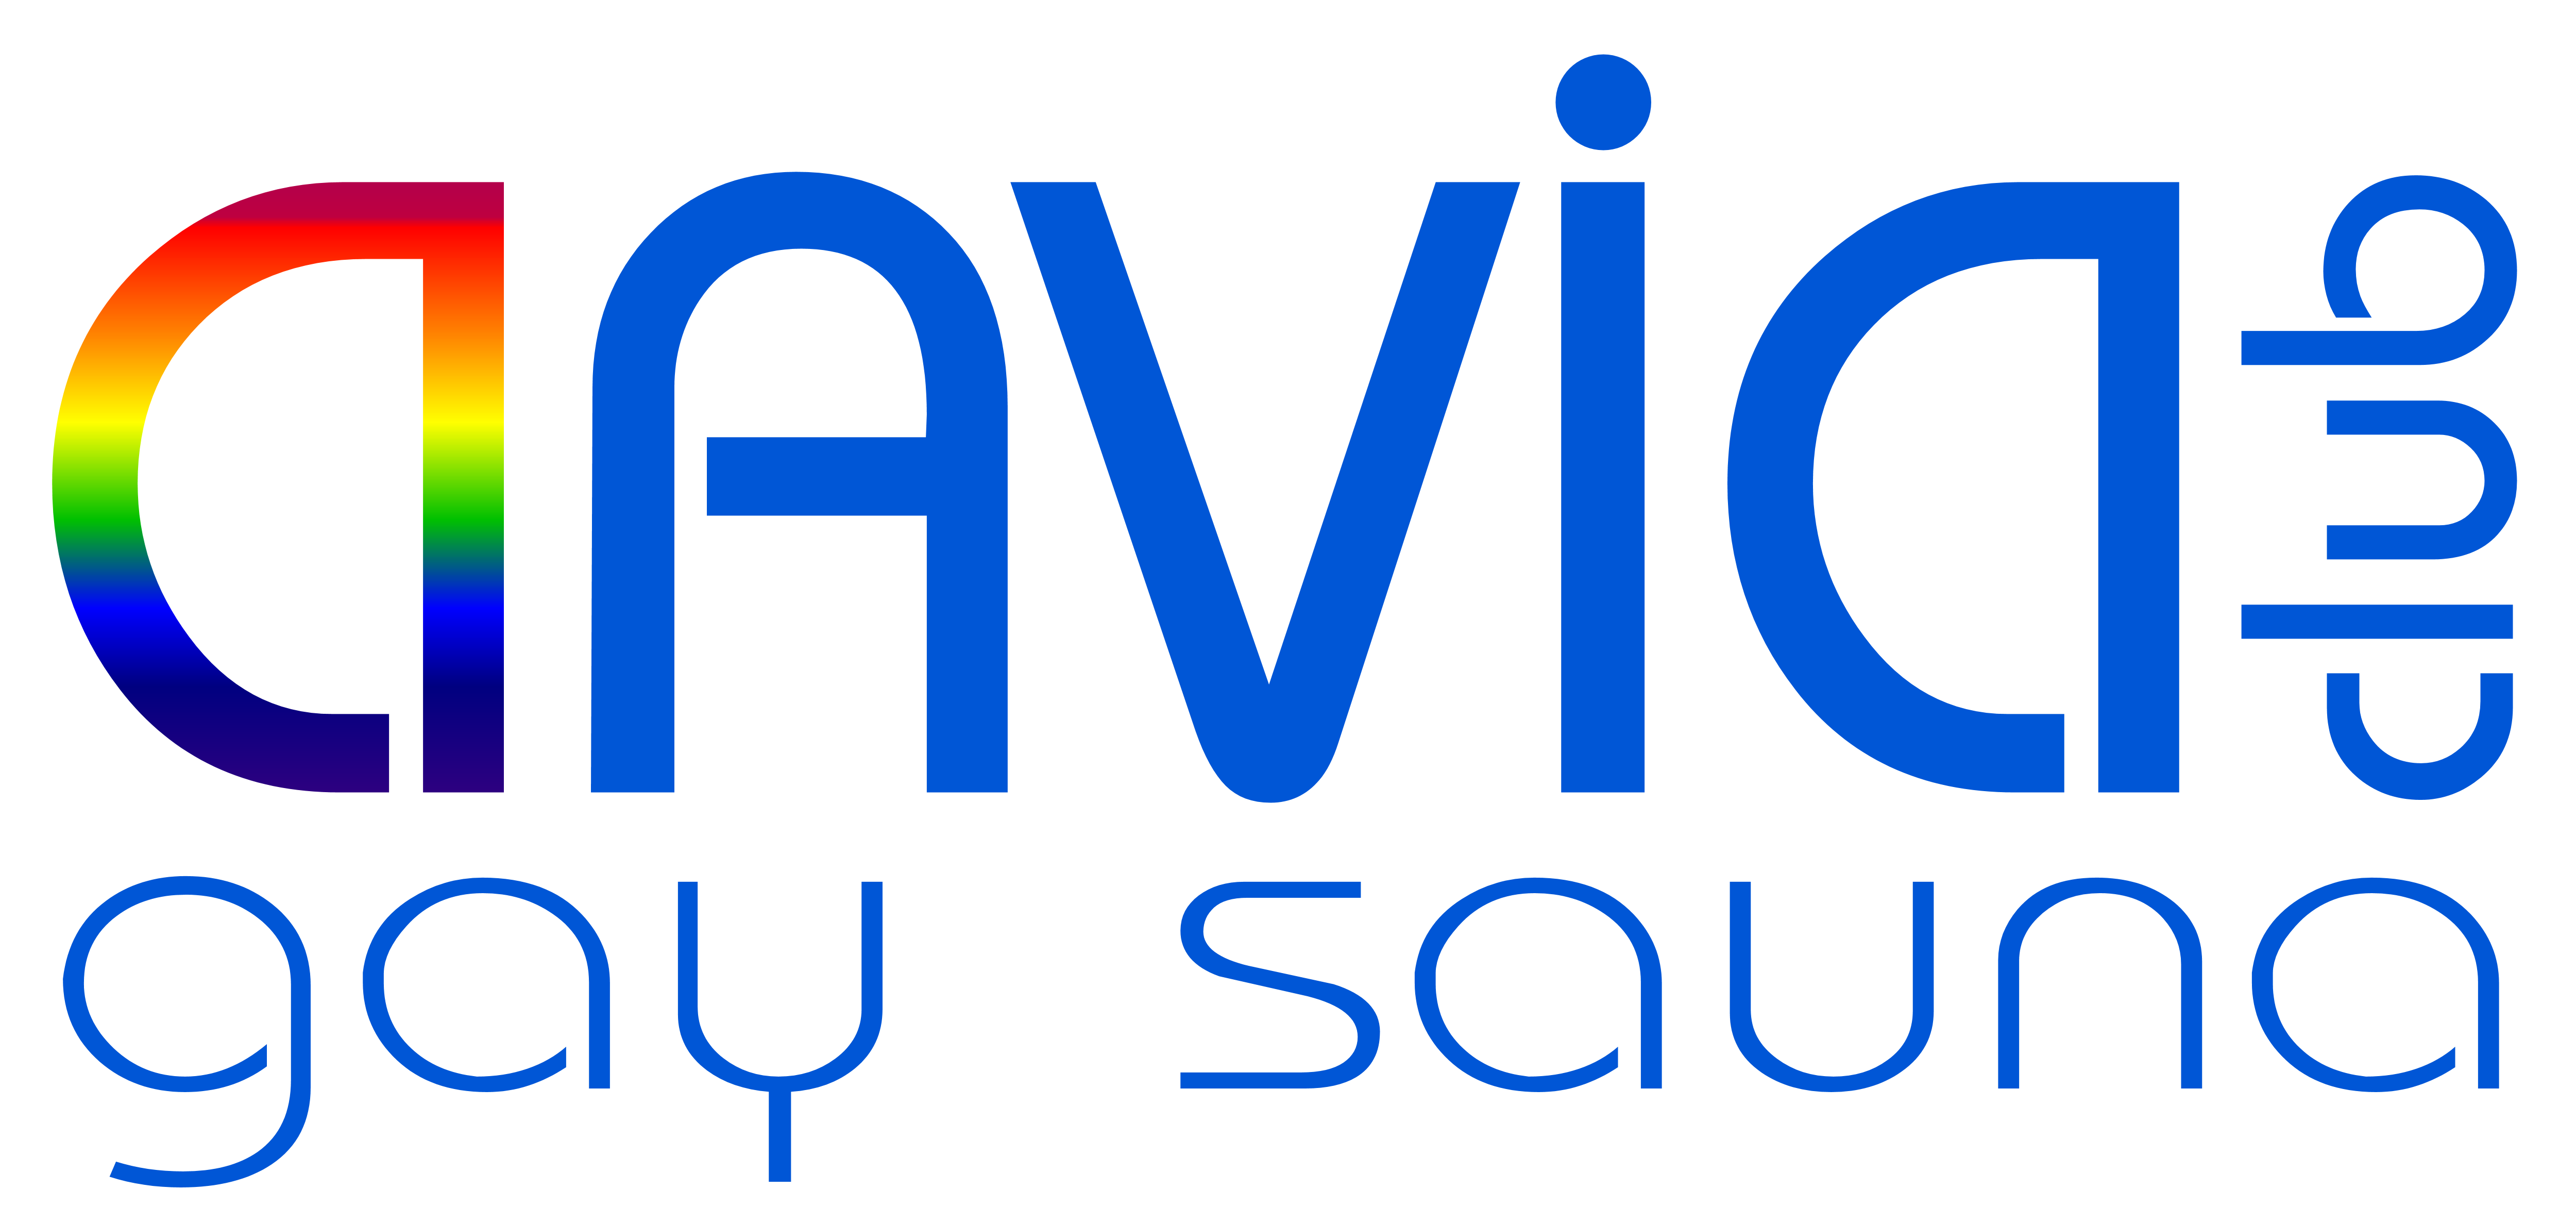 david-logo-big-blue